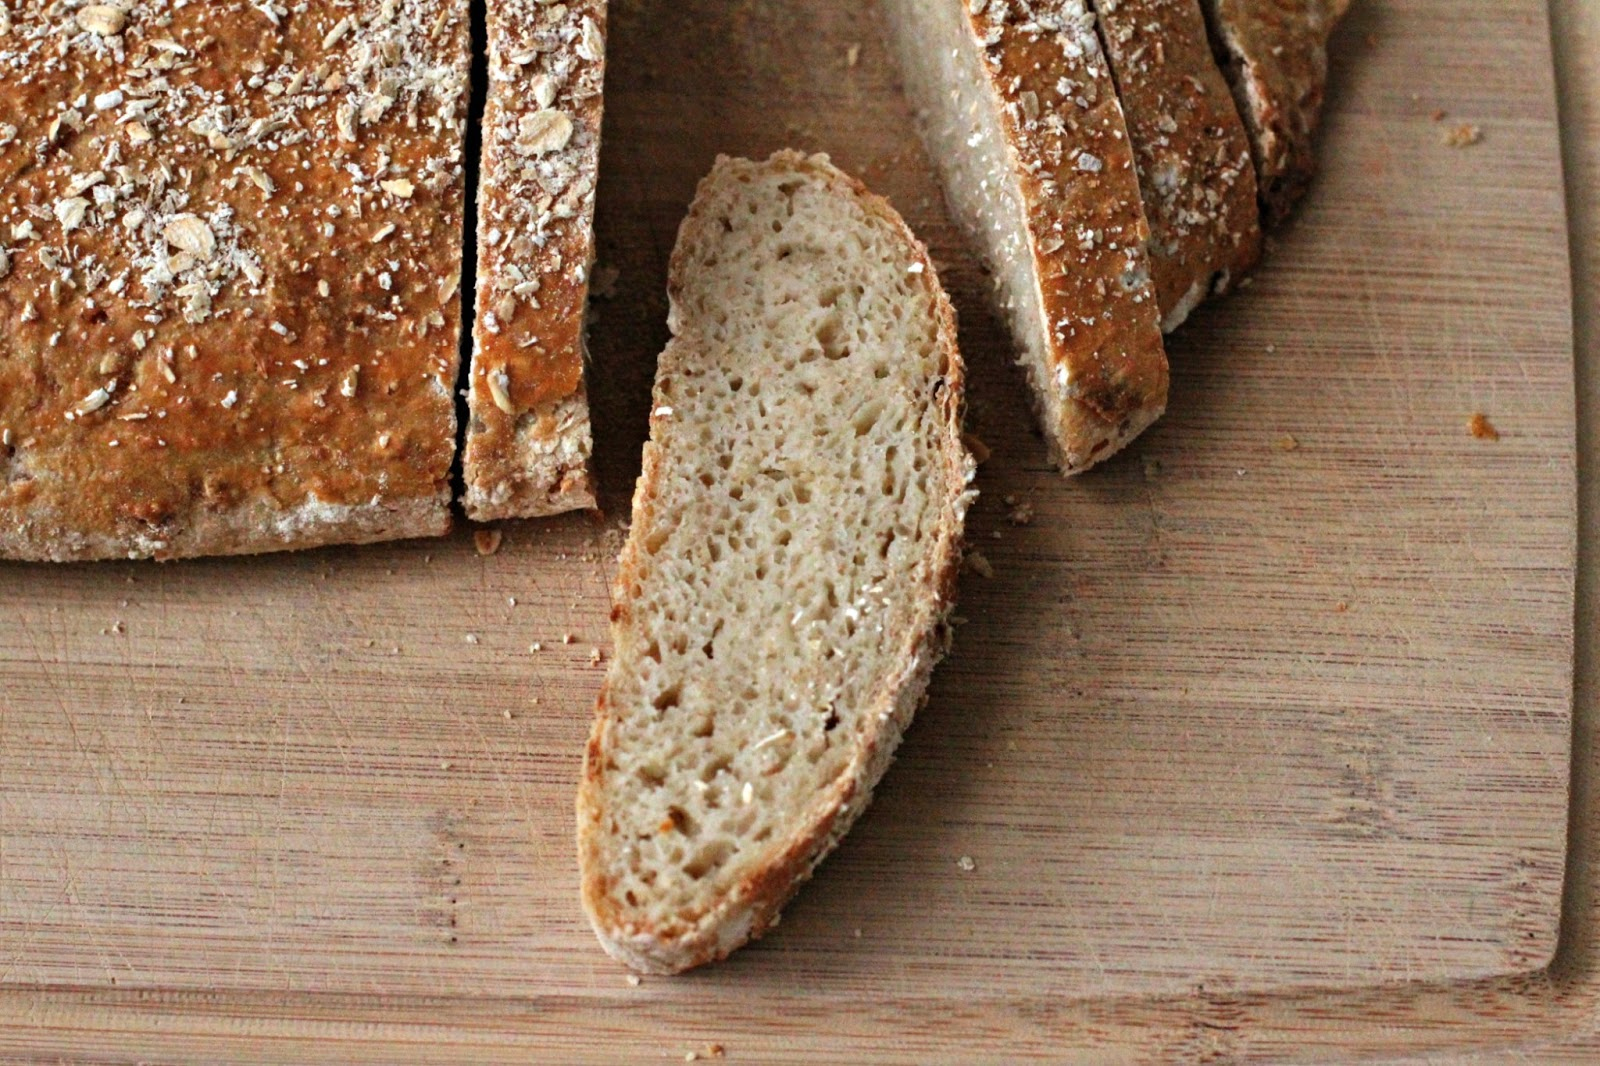 Milk and Honey: Rolled Oat and Apple Bread